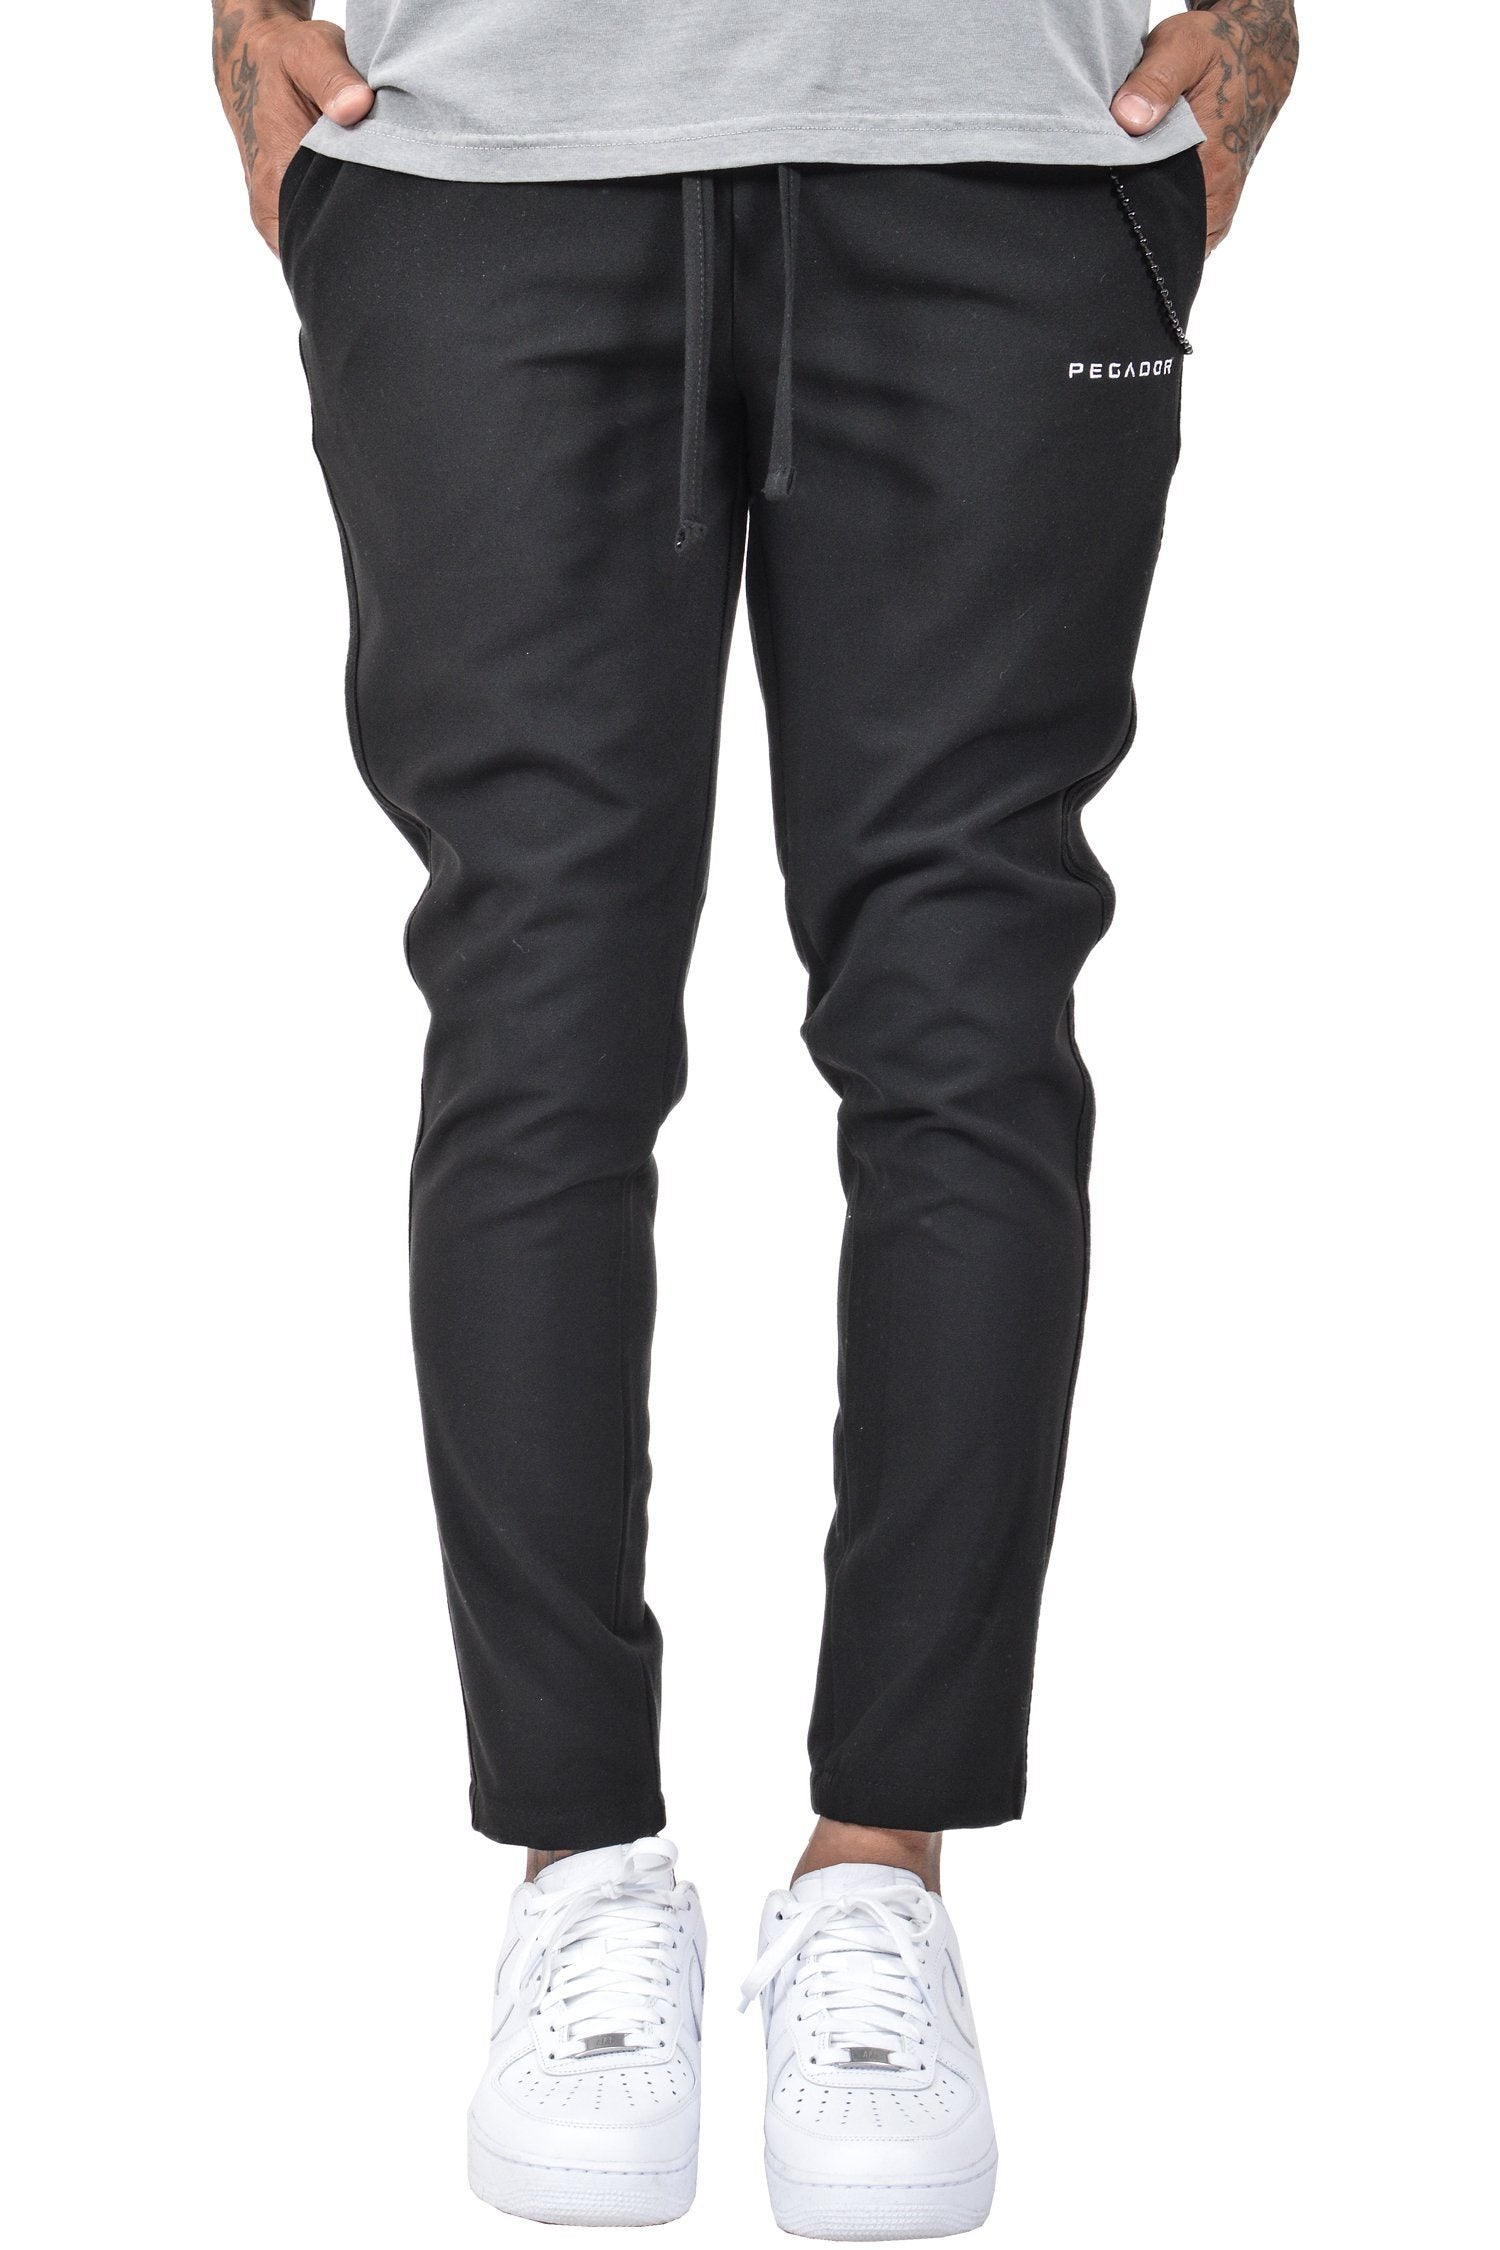 Oviedo Logo Pants Black